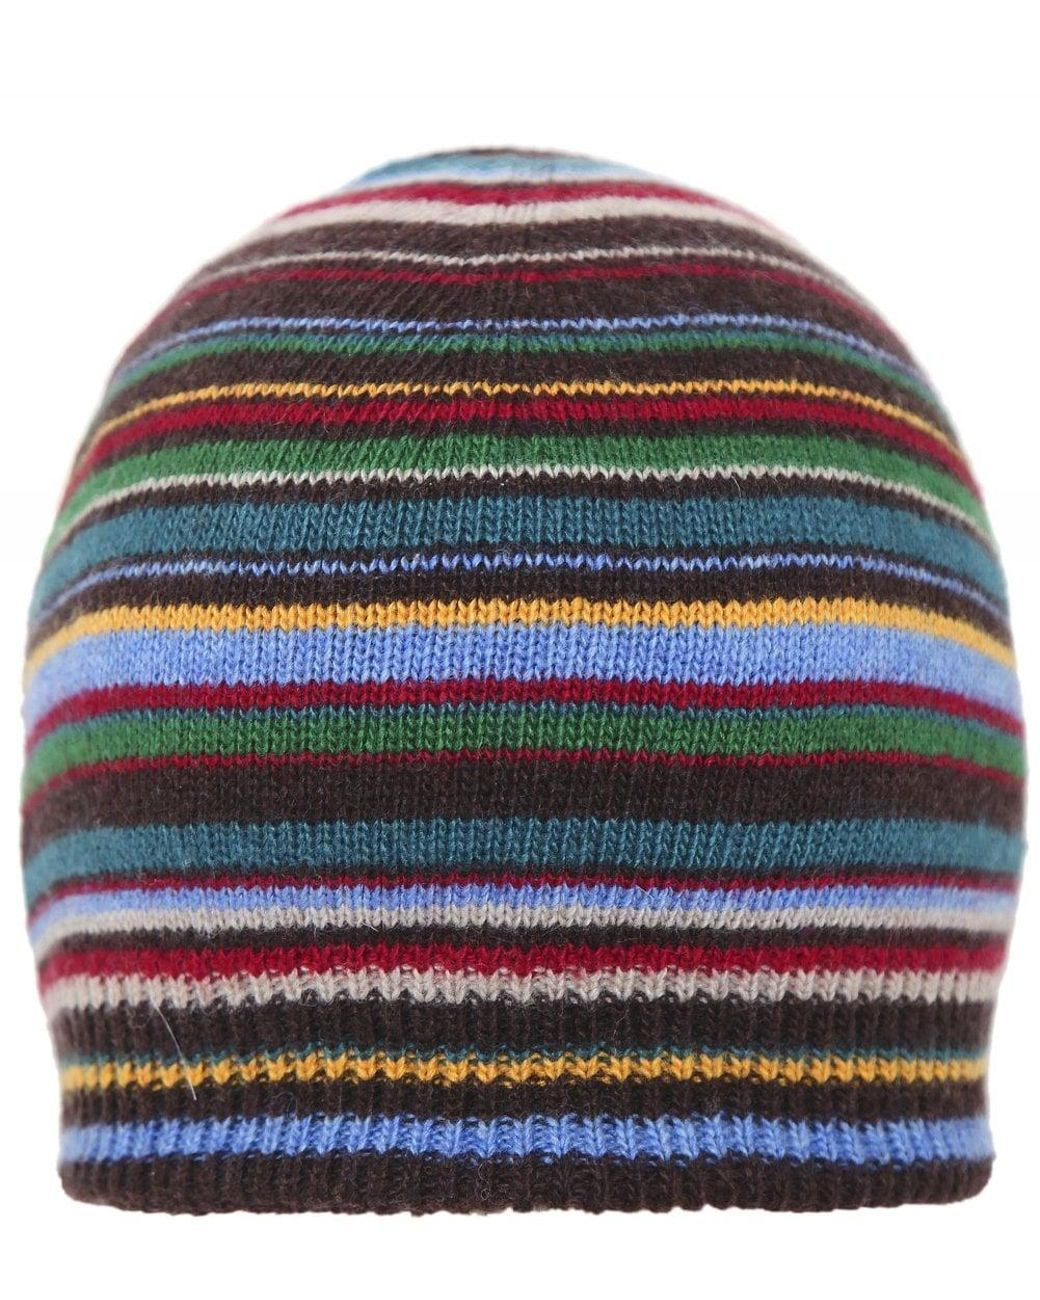 31170031c2ed6 Lyst - Paul Smith Cashmere Blend Striped Beanie in Blue for Men - Save 16%